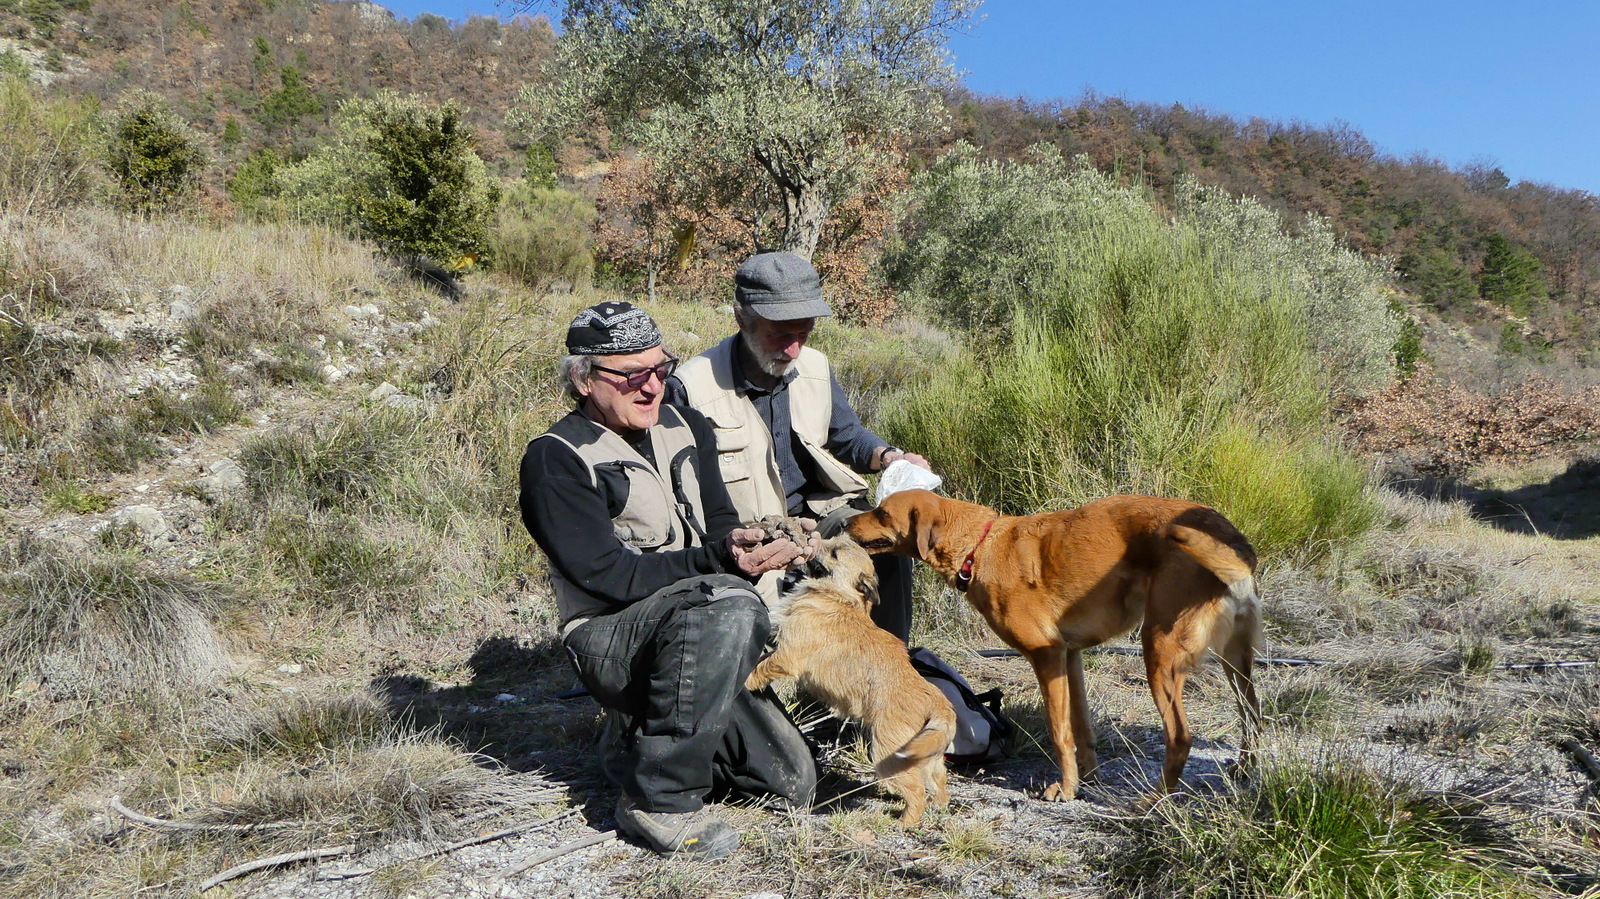 Truffle hunting clever dogs